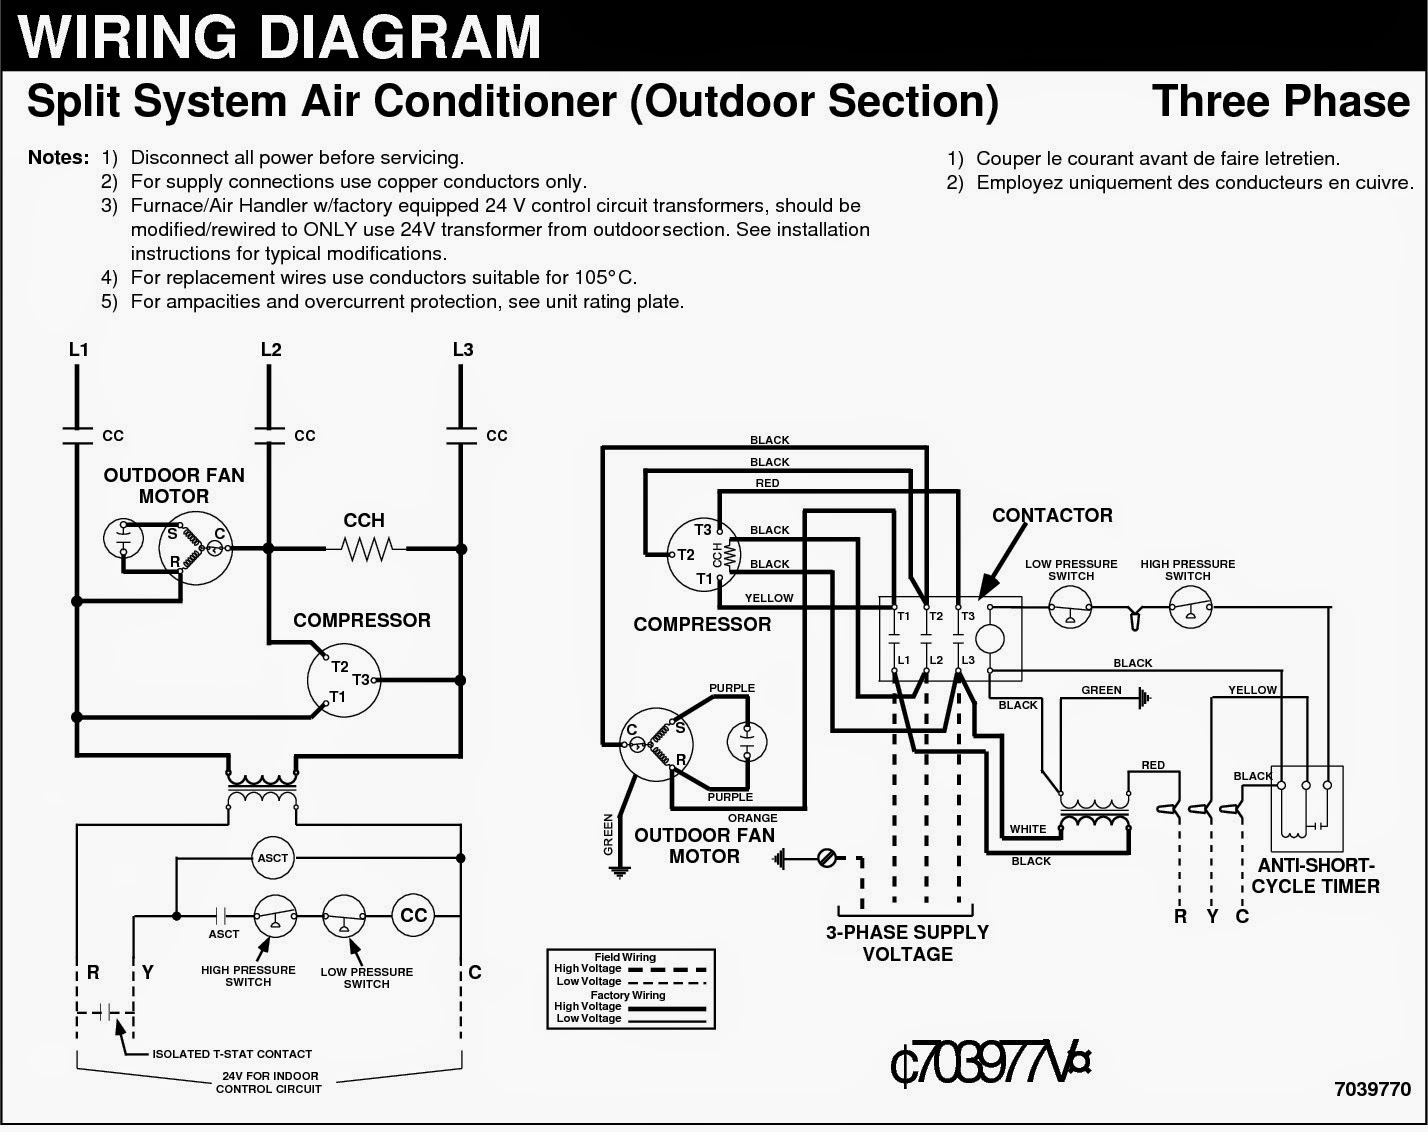 3+phase split schematic wiring diagram free vehicle wiring diagrams \u2022